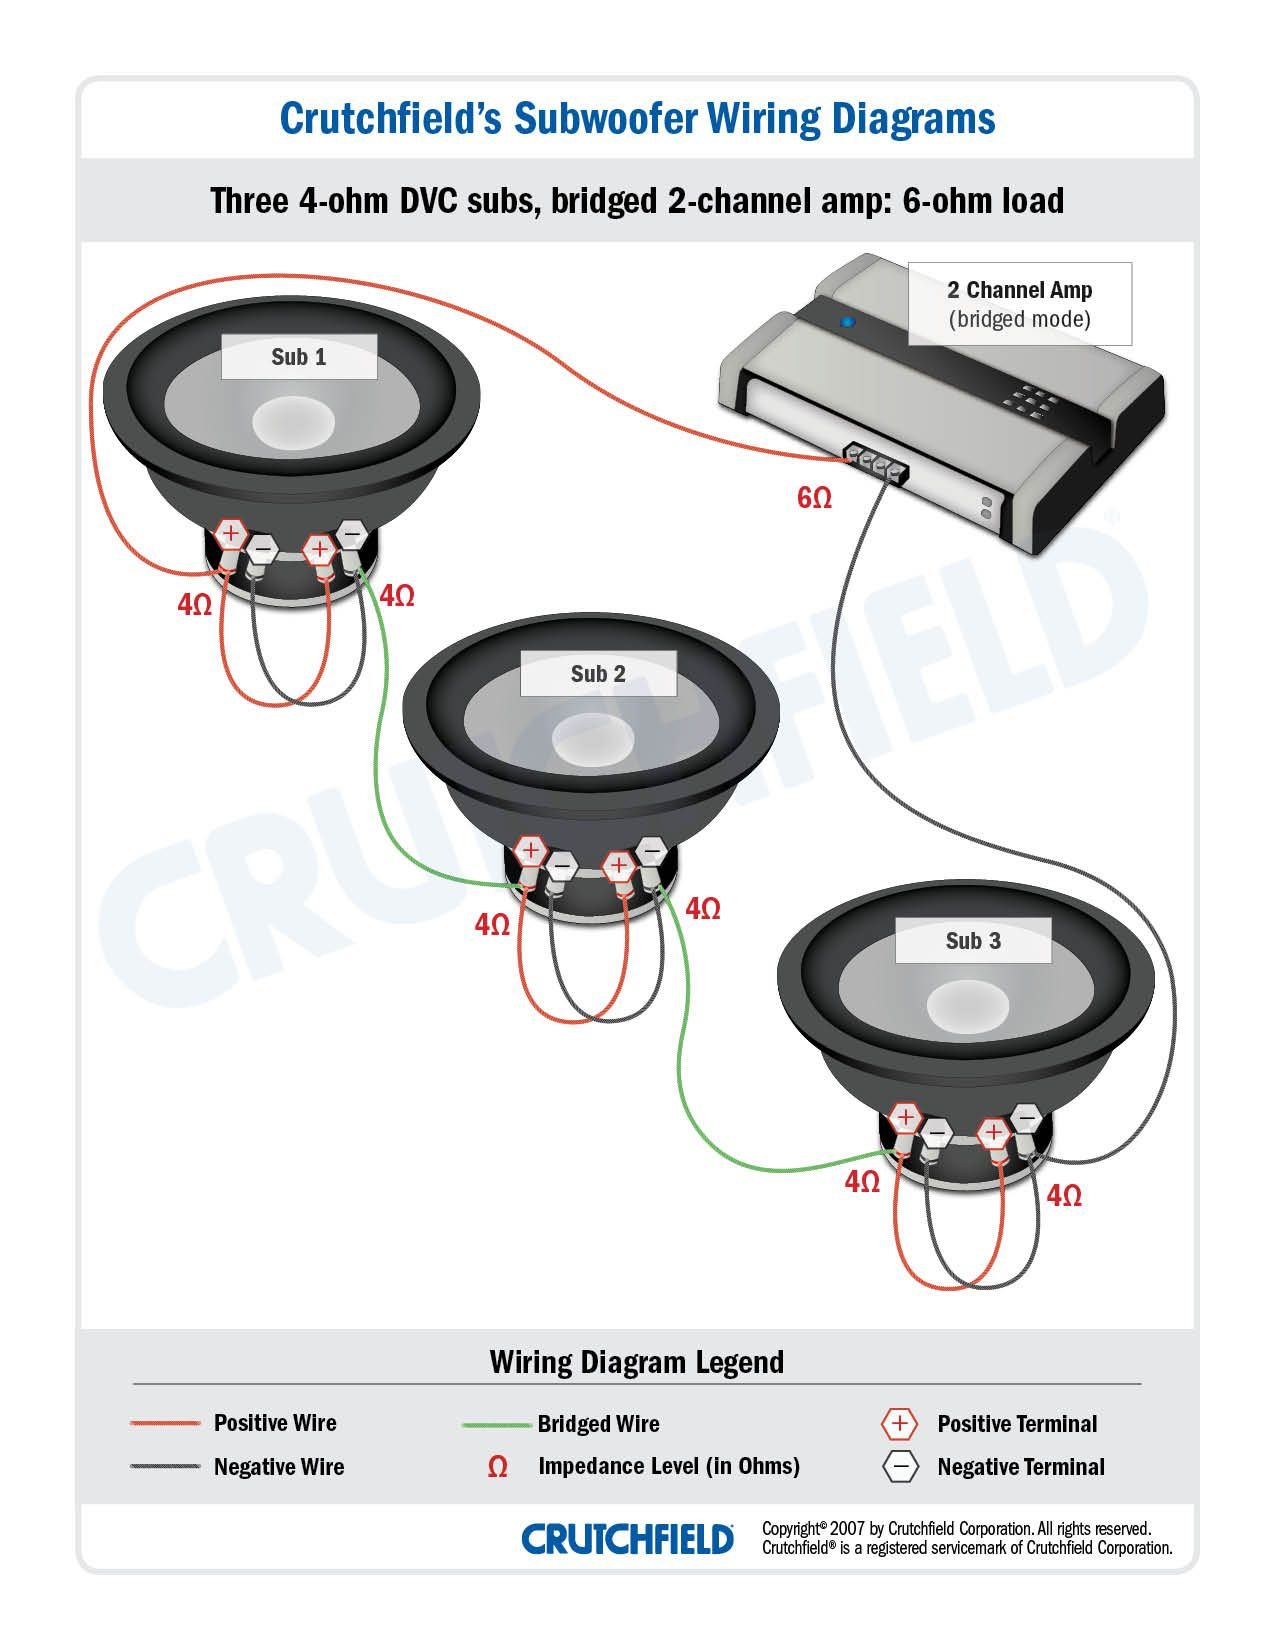 Rockford Subwoofer Wiring Diagram | Wiring Diagram on